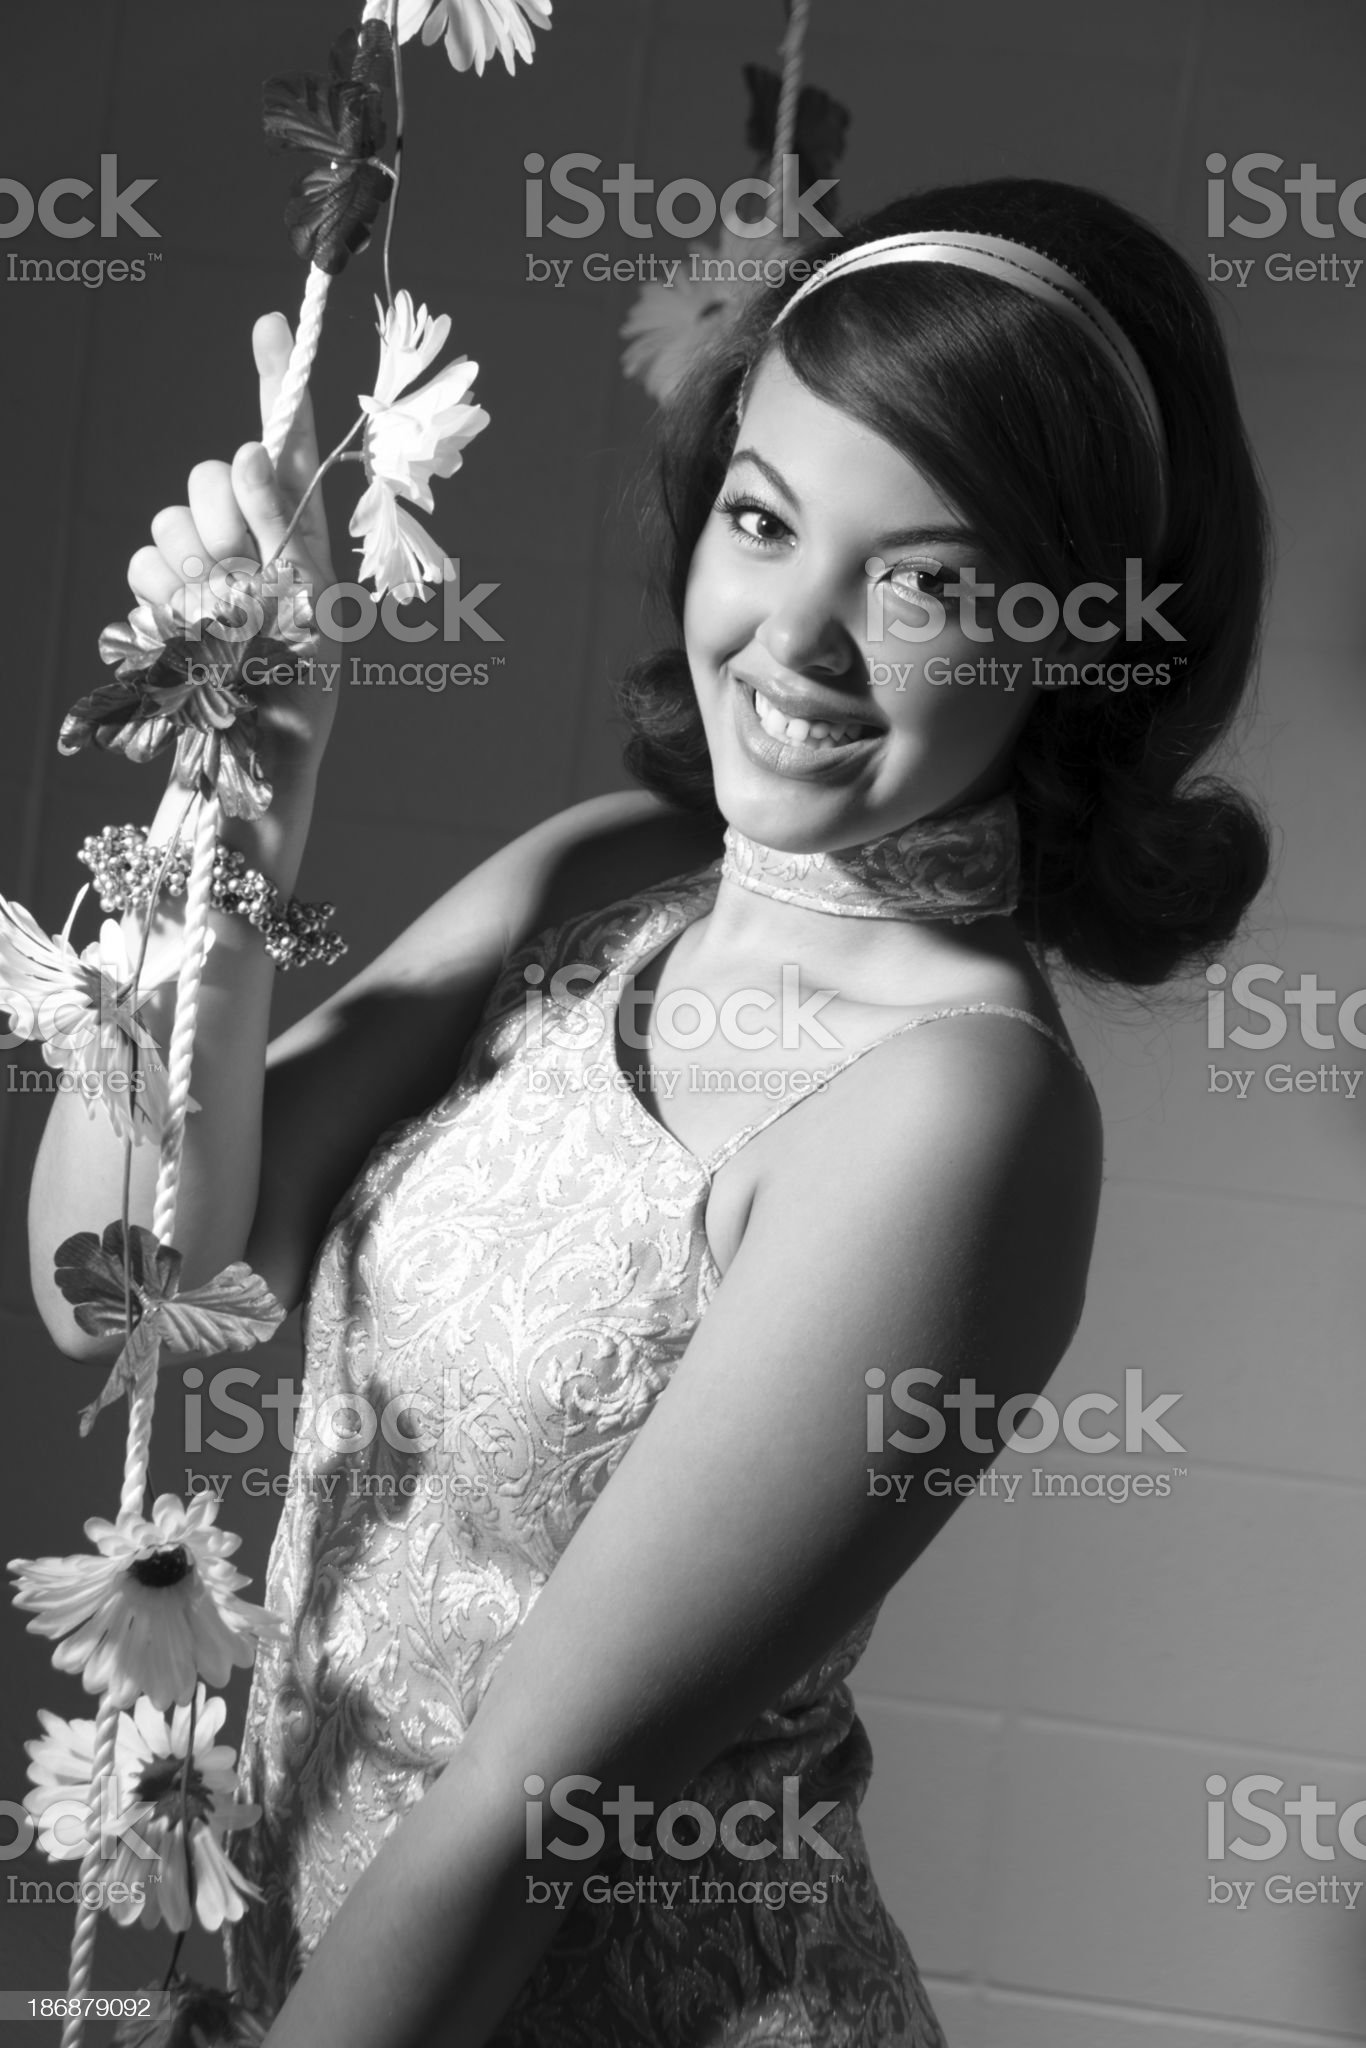 B&W of smiling 60s styled teen with swing. royalty-free stock photo